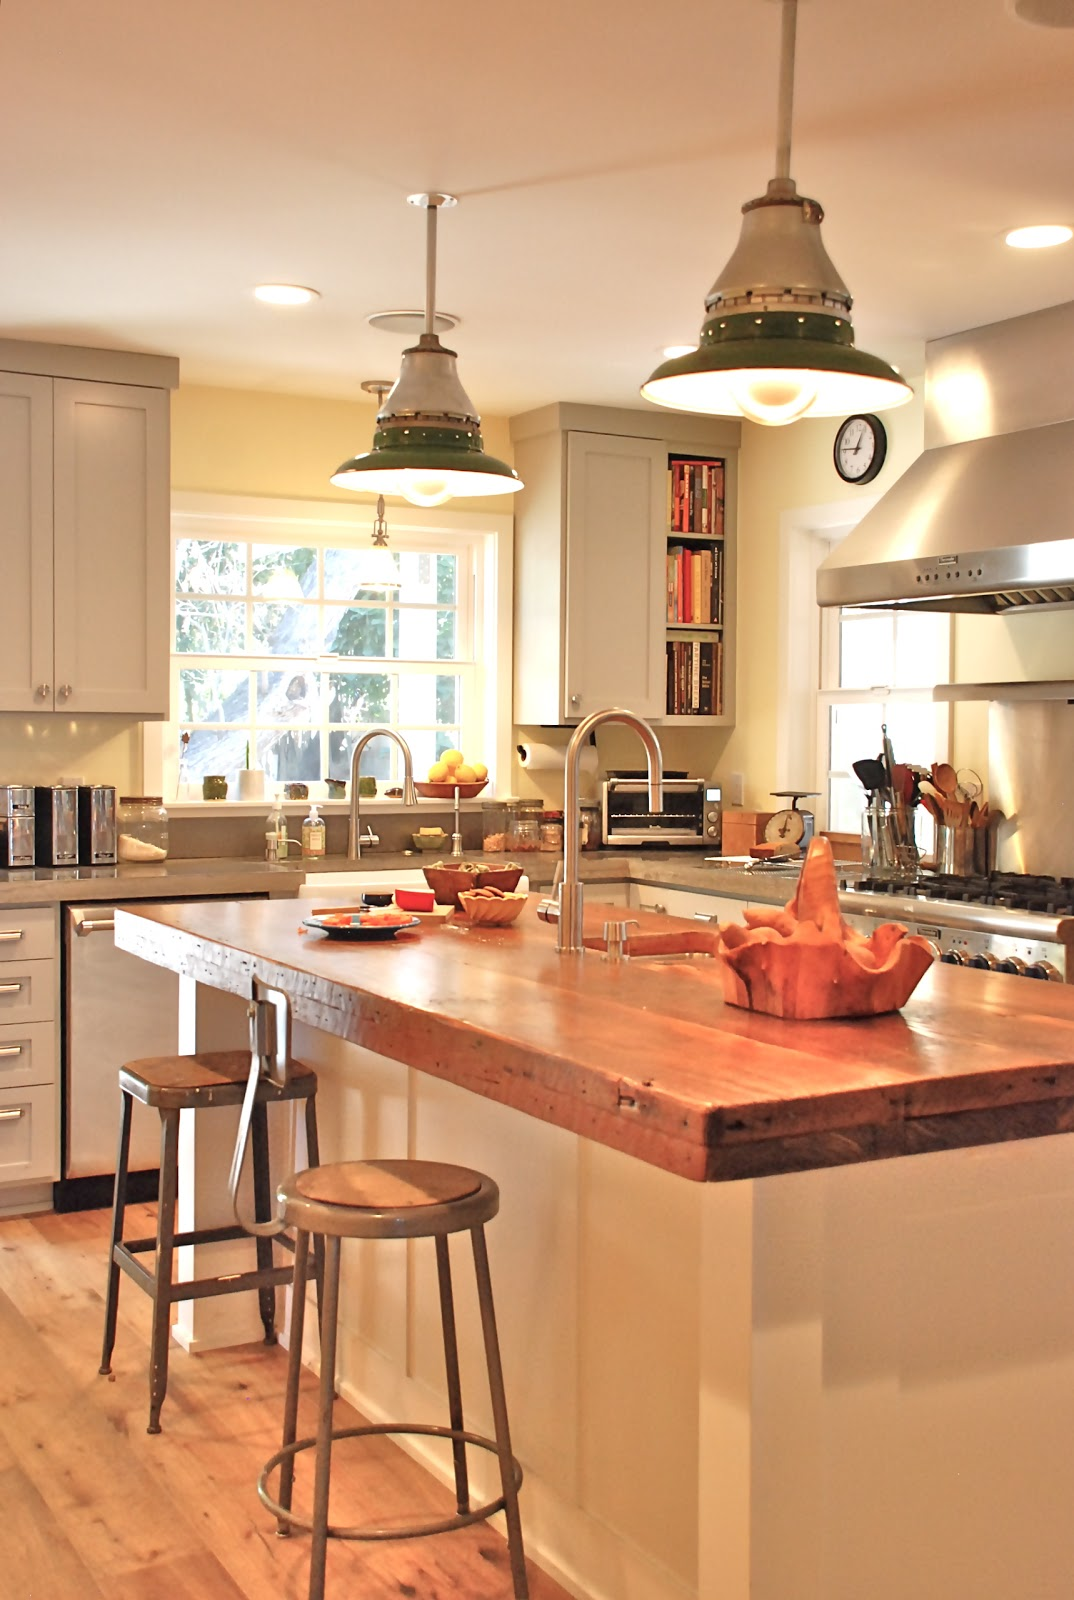 This American Home California Kitchen Remodel Modern Romance